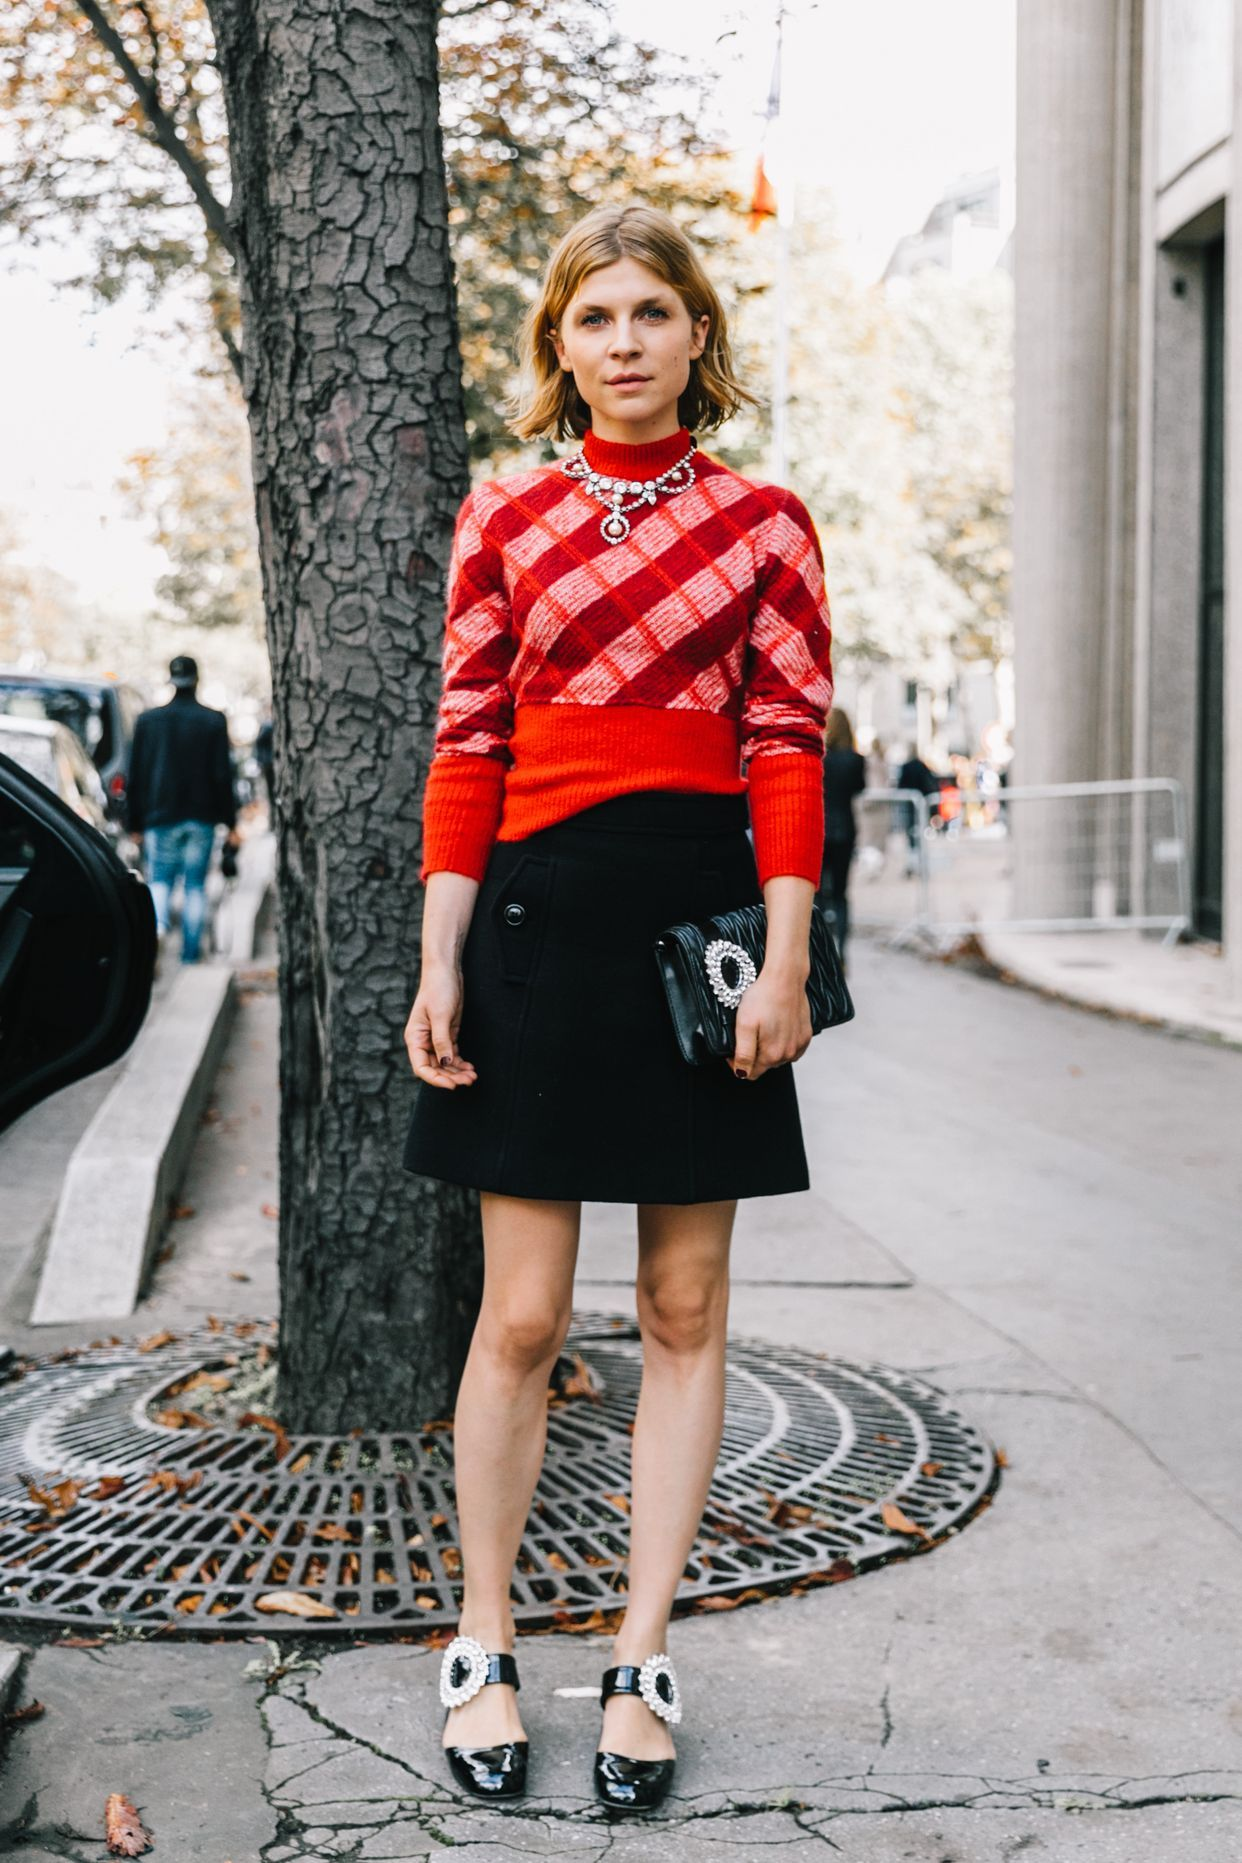 Fashion week Posey clemence get the look for less for lady